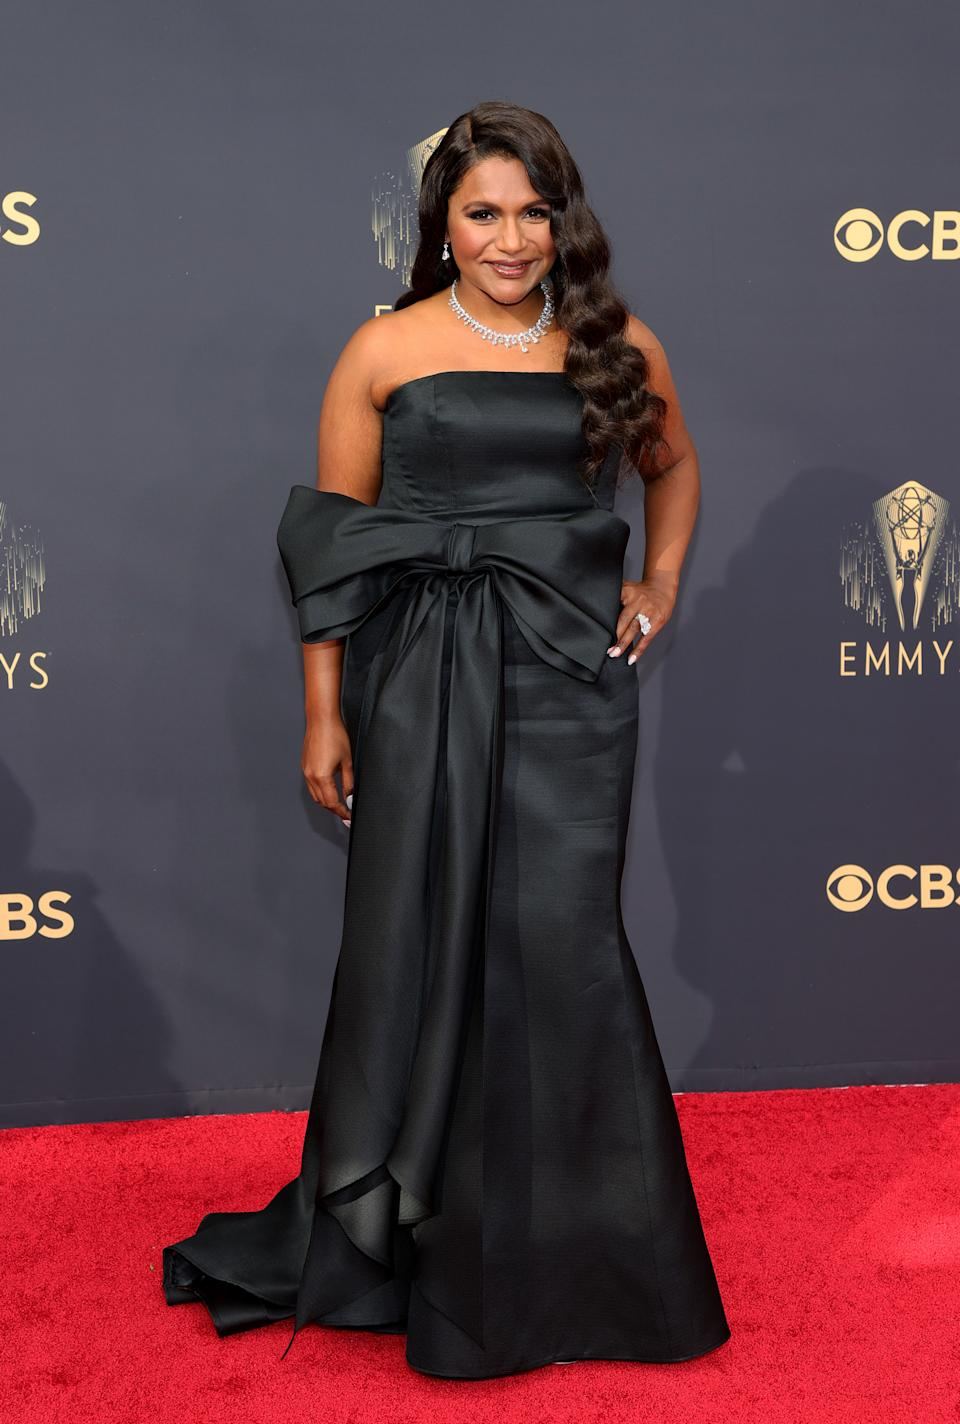 Mindy Kaling wears a black strapless dress with a bow at the waist at the 73rd Primetime Emmy Awards at L.A. LIVE on September 19, 2021 in Los Angeles, California. (Photo by Rich Fury/Getty Images)